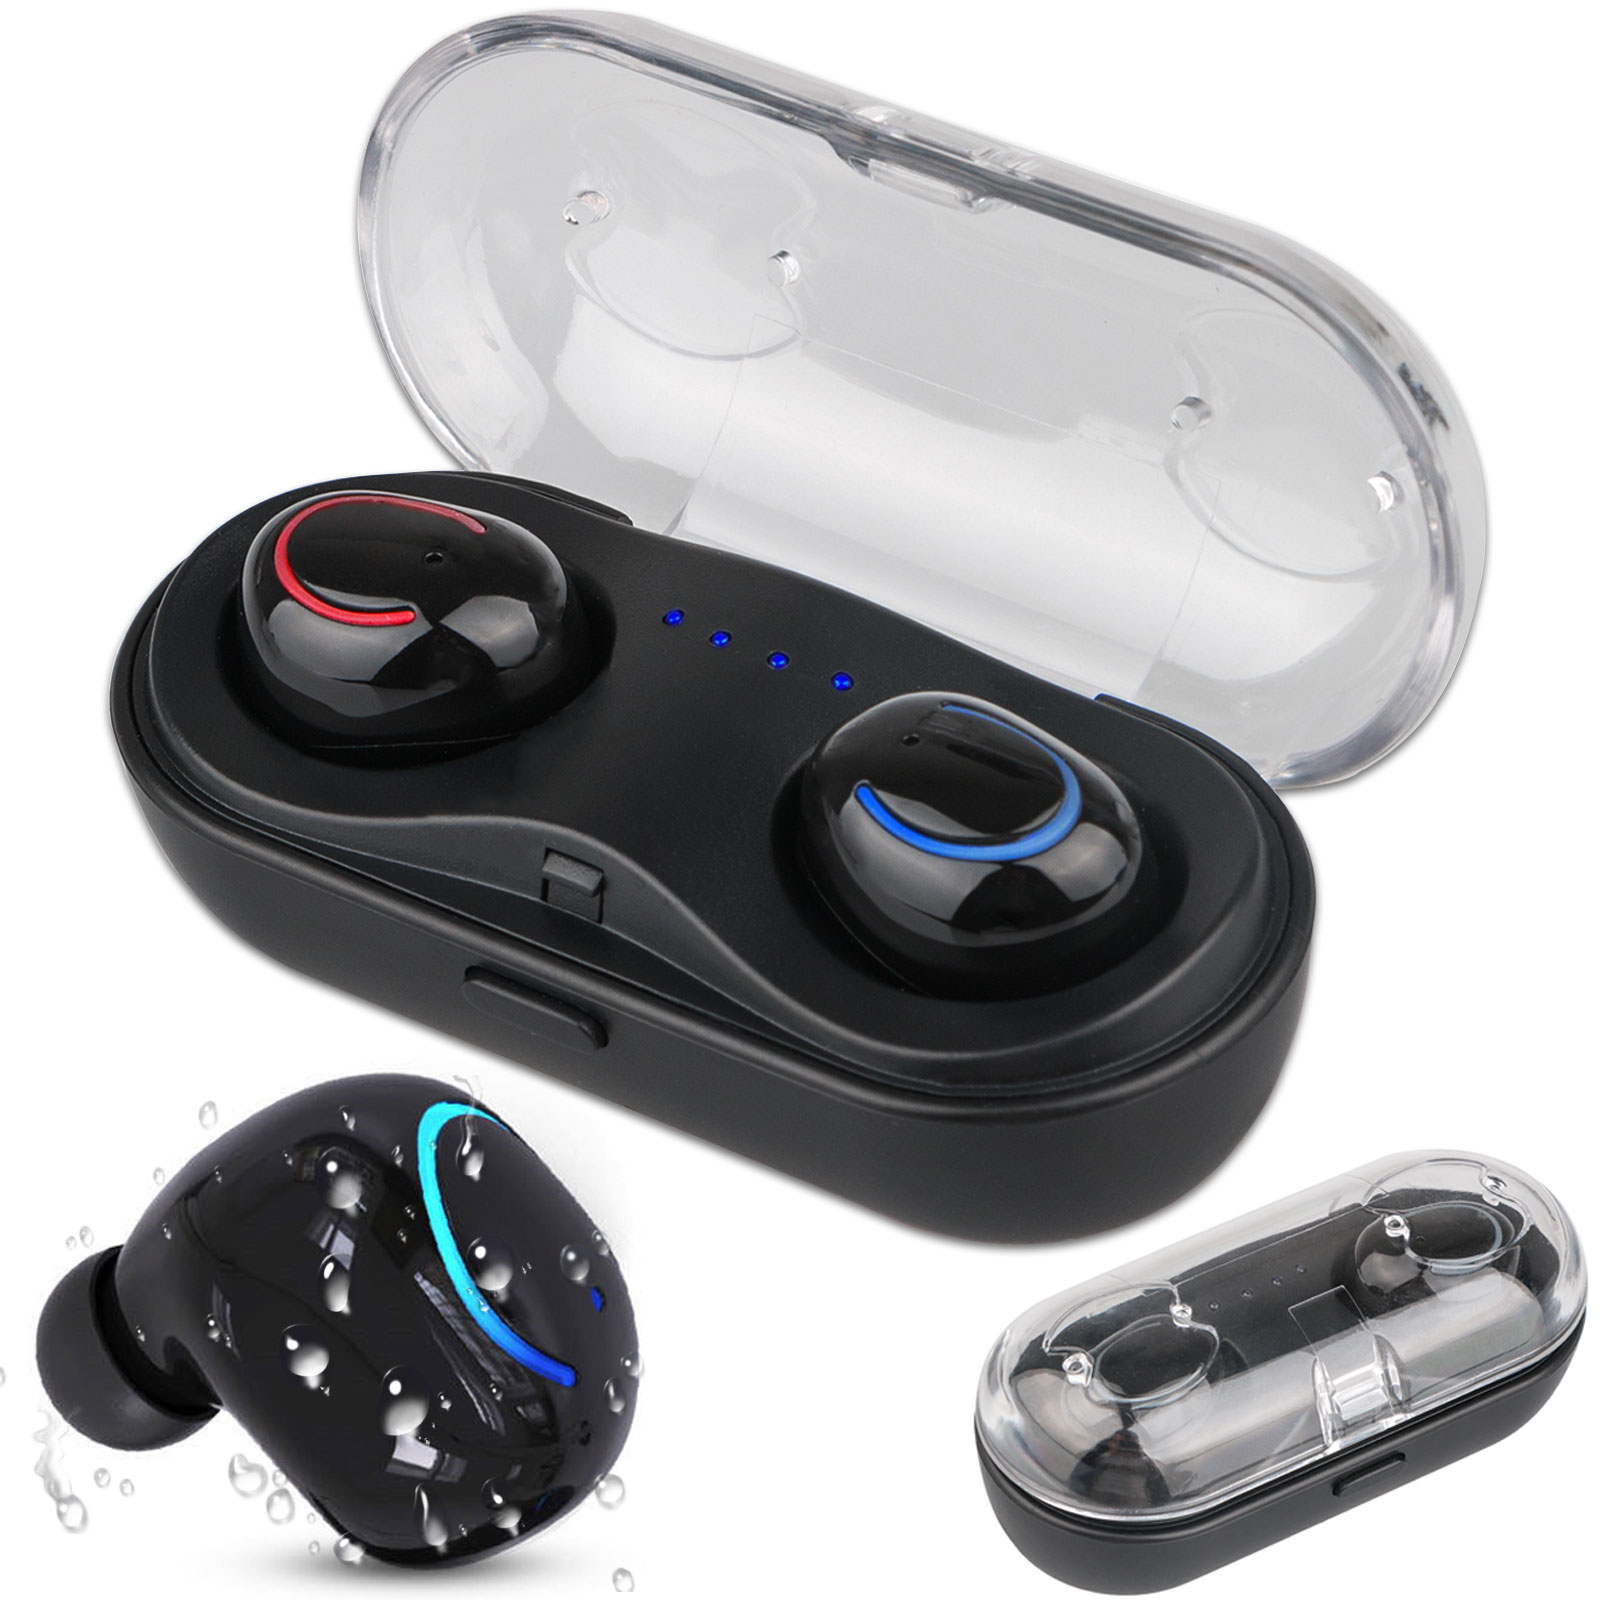 Mini Wireless TWS Earbuds, Bluetooth V4.2+ EDR Earphone Smallest Wireless Invisible Headphone, Noise Cancelling Stereo Surround Headset, for iPhone and Android Smart Phones